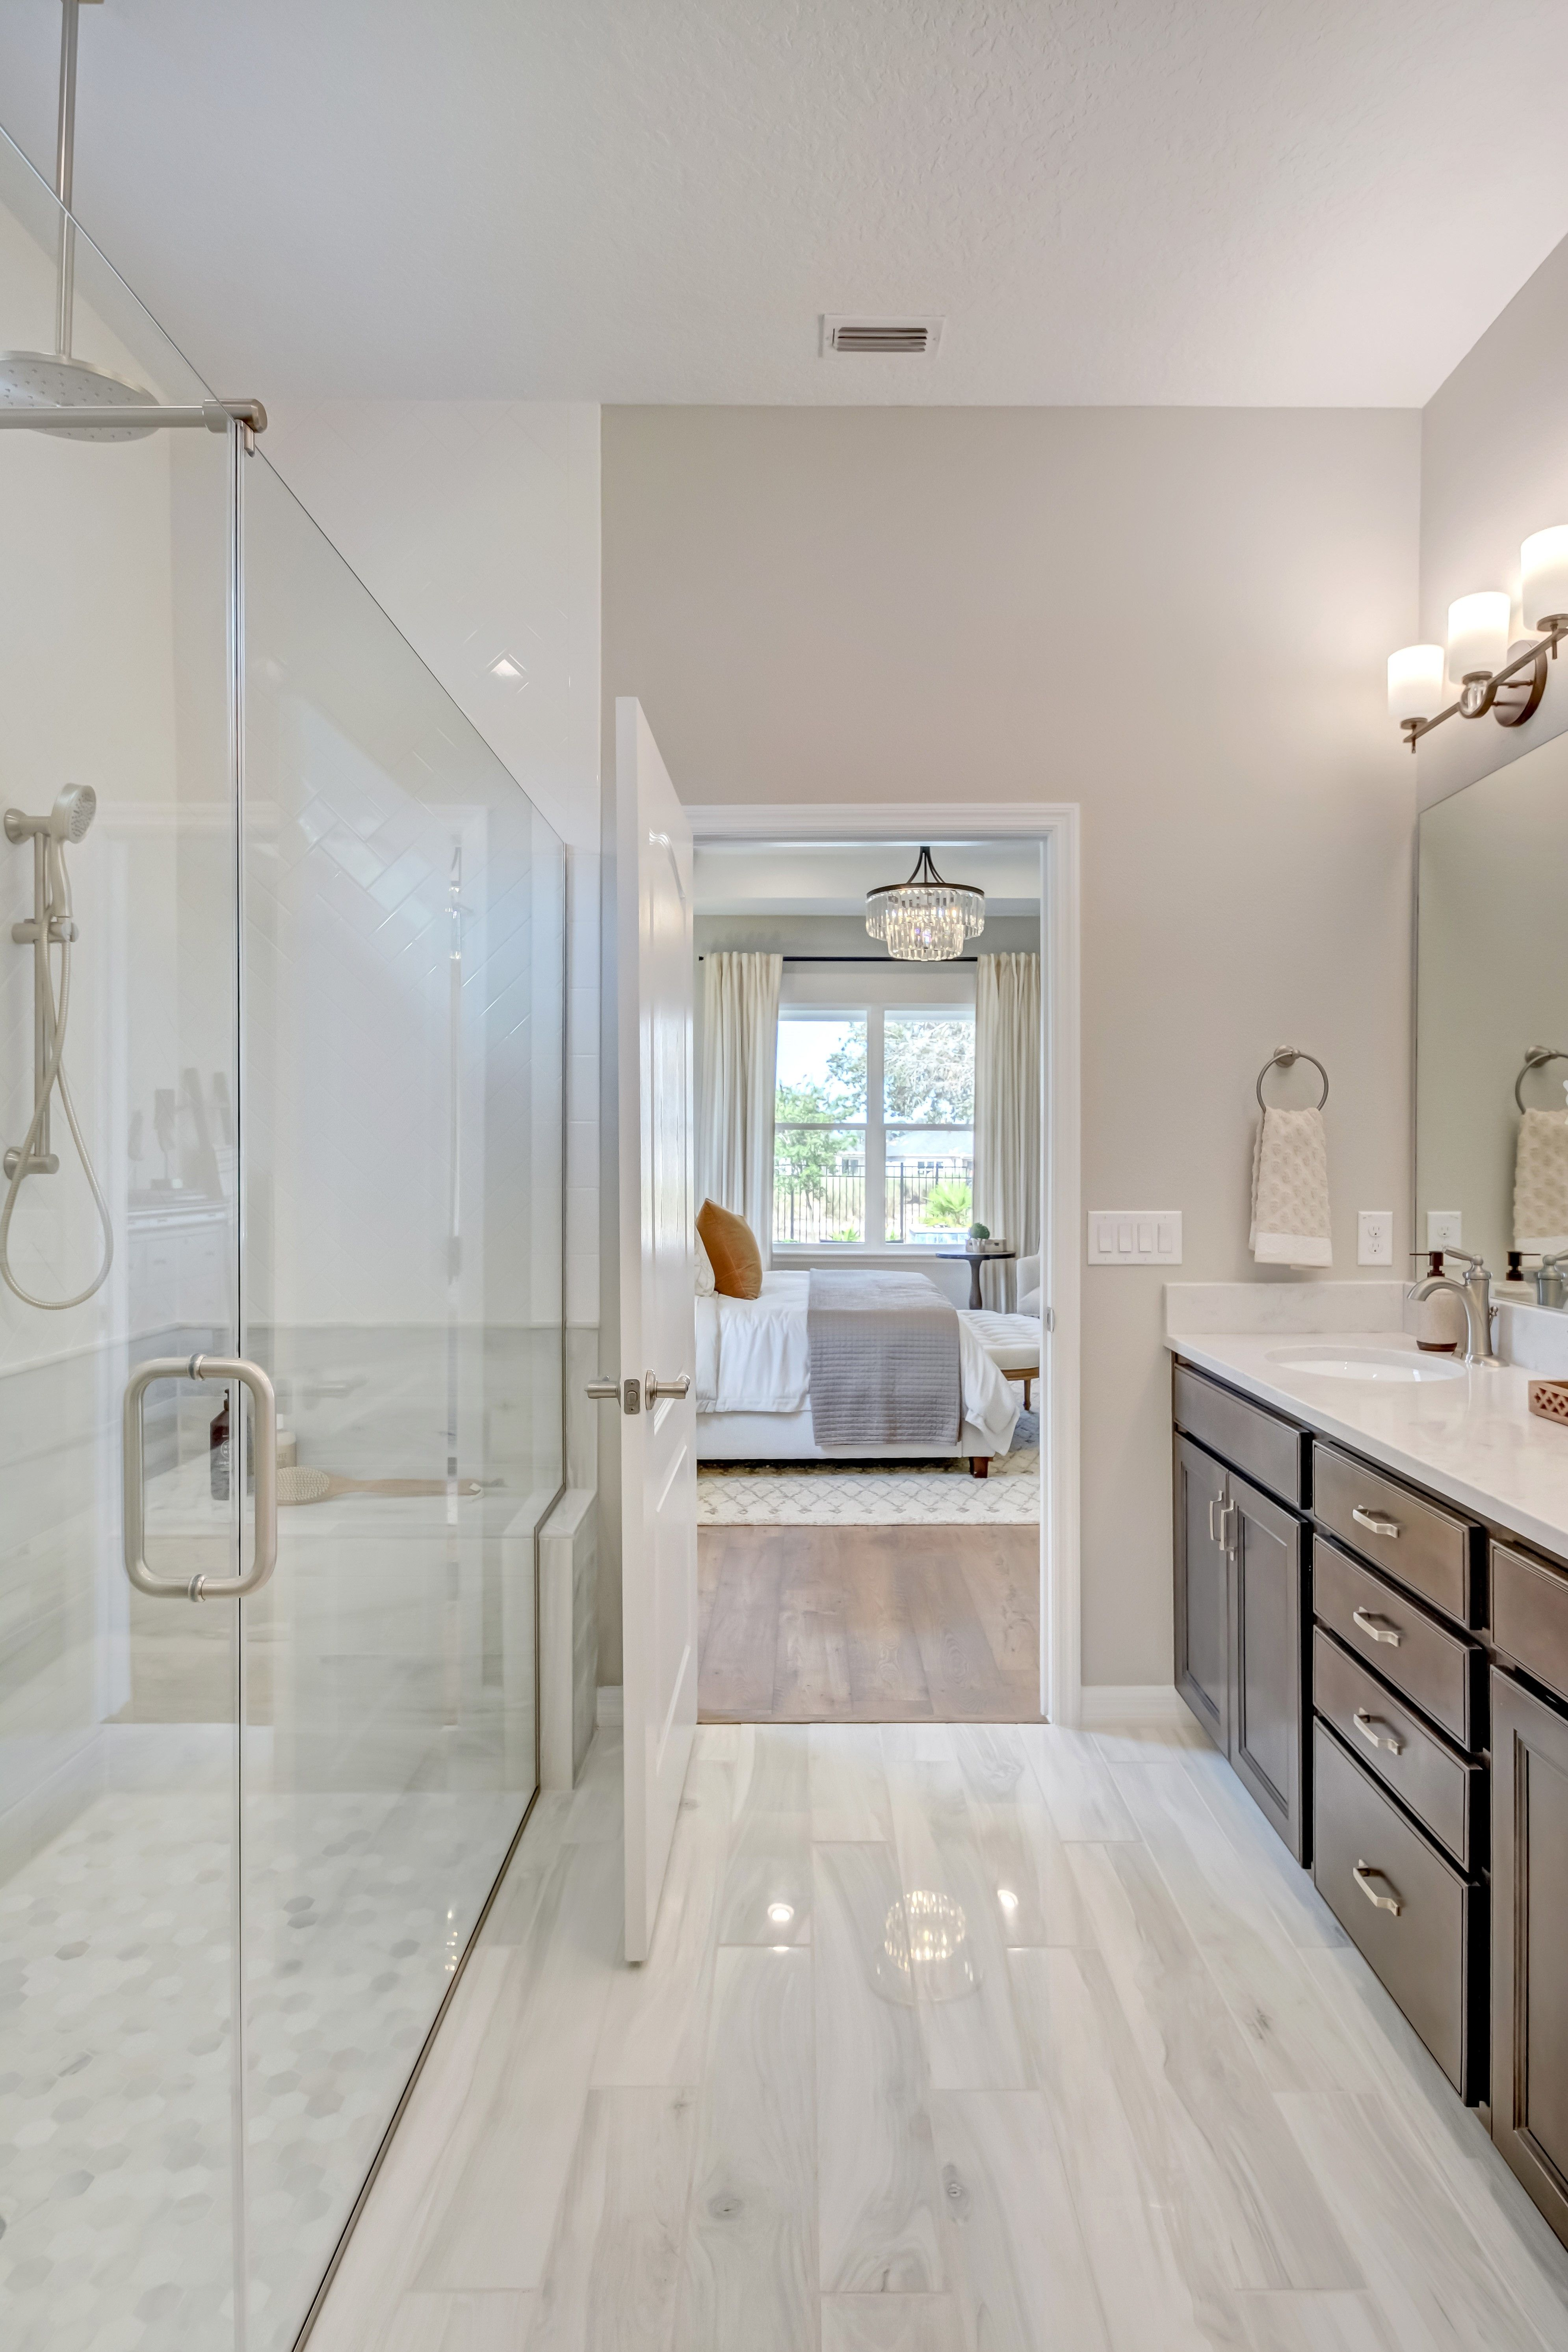 Bathroom featured in the Balfour By K. Hovnanian's® Four Seasons in Orlando, FL